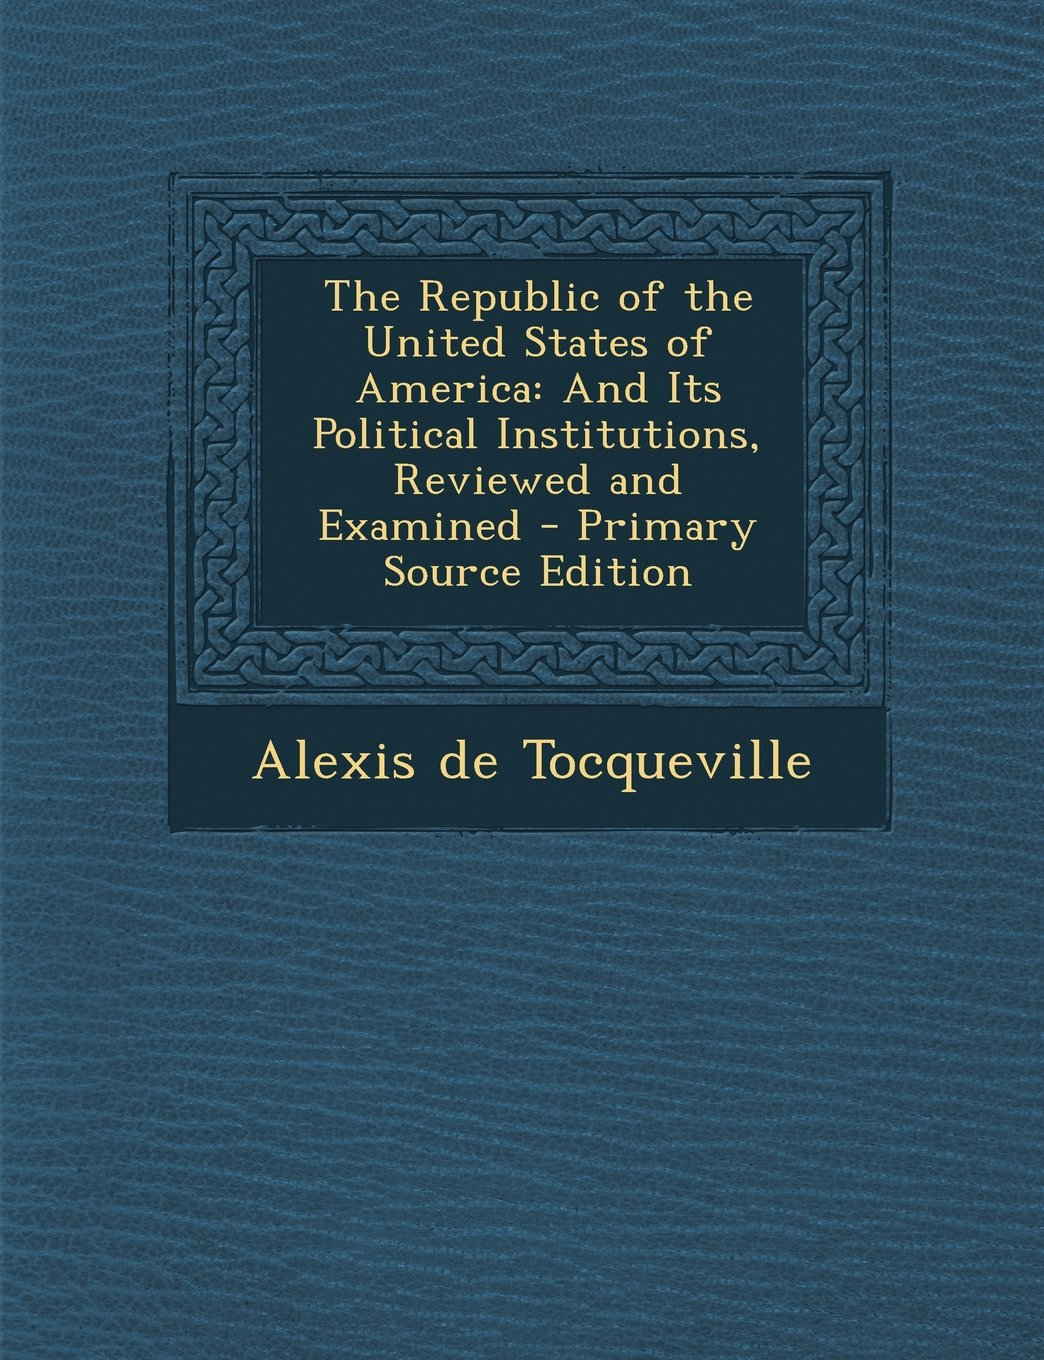 The Republic of the United States of America: And Its Political Institutions, Reviewed and Examined ebook